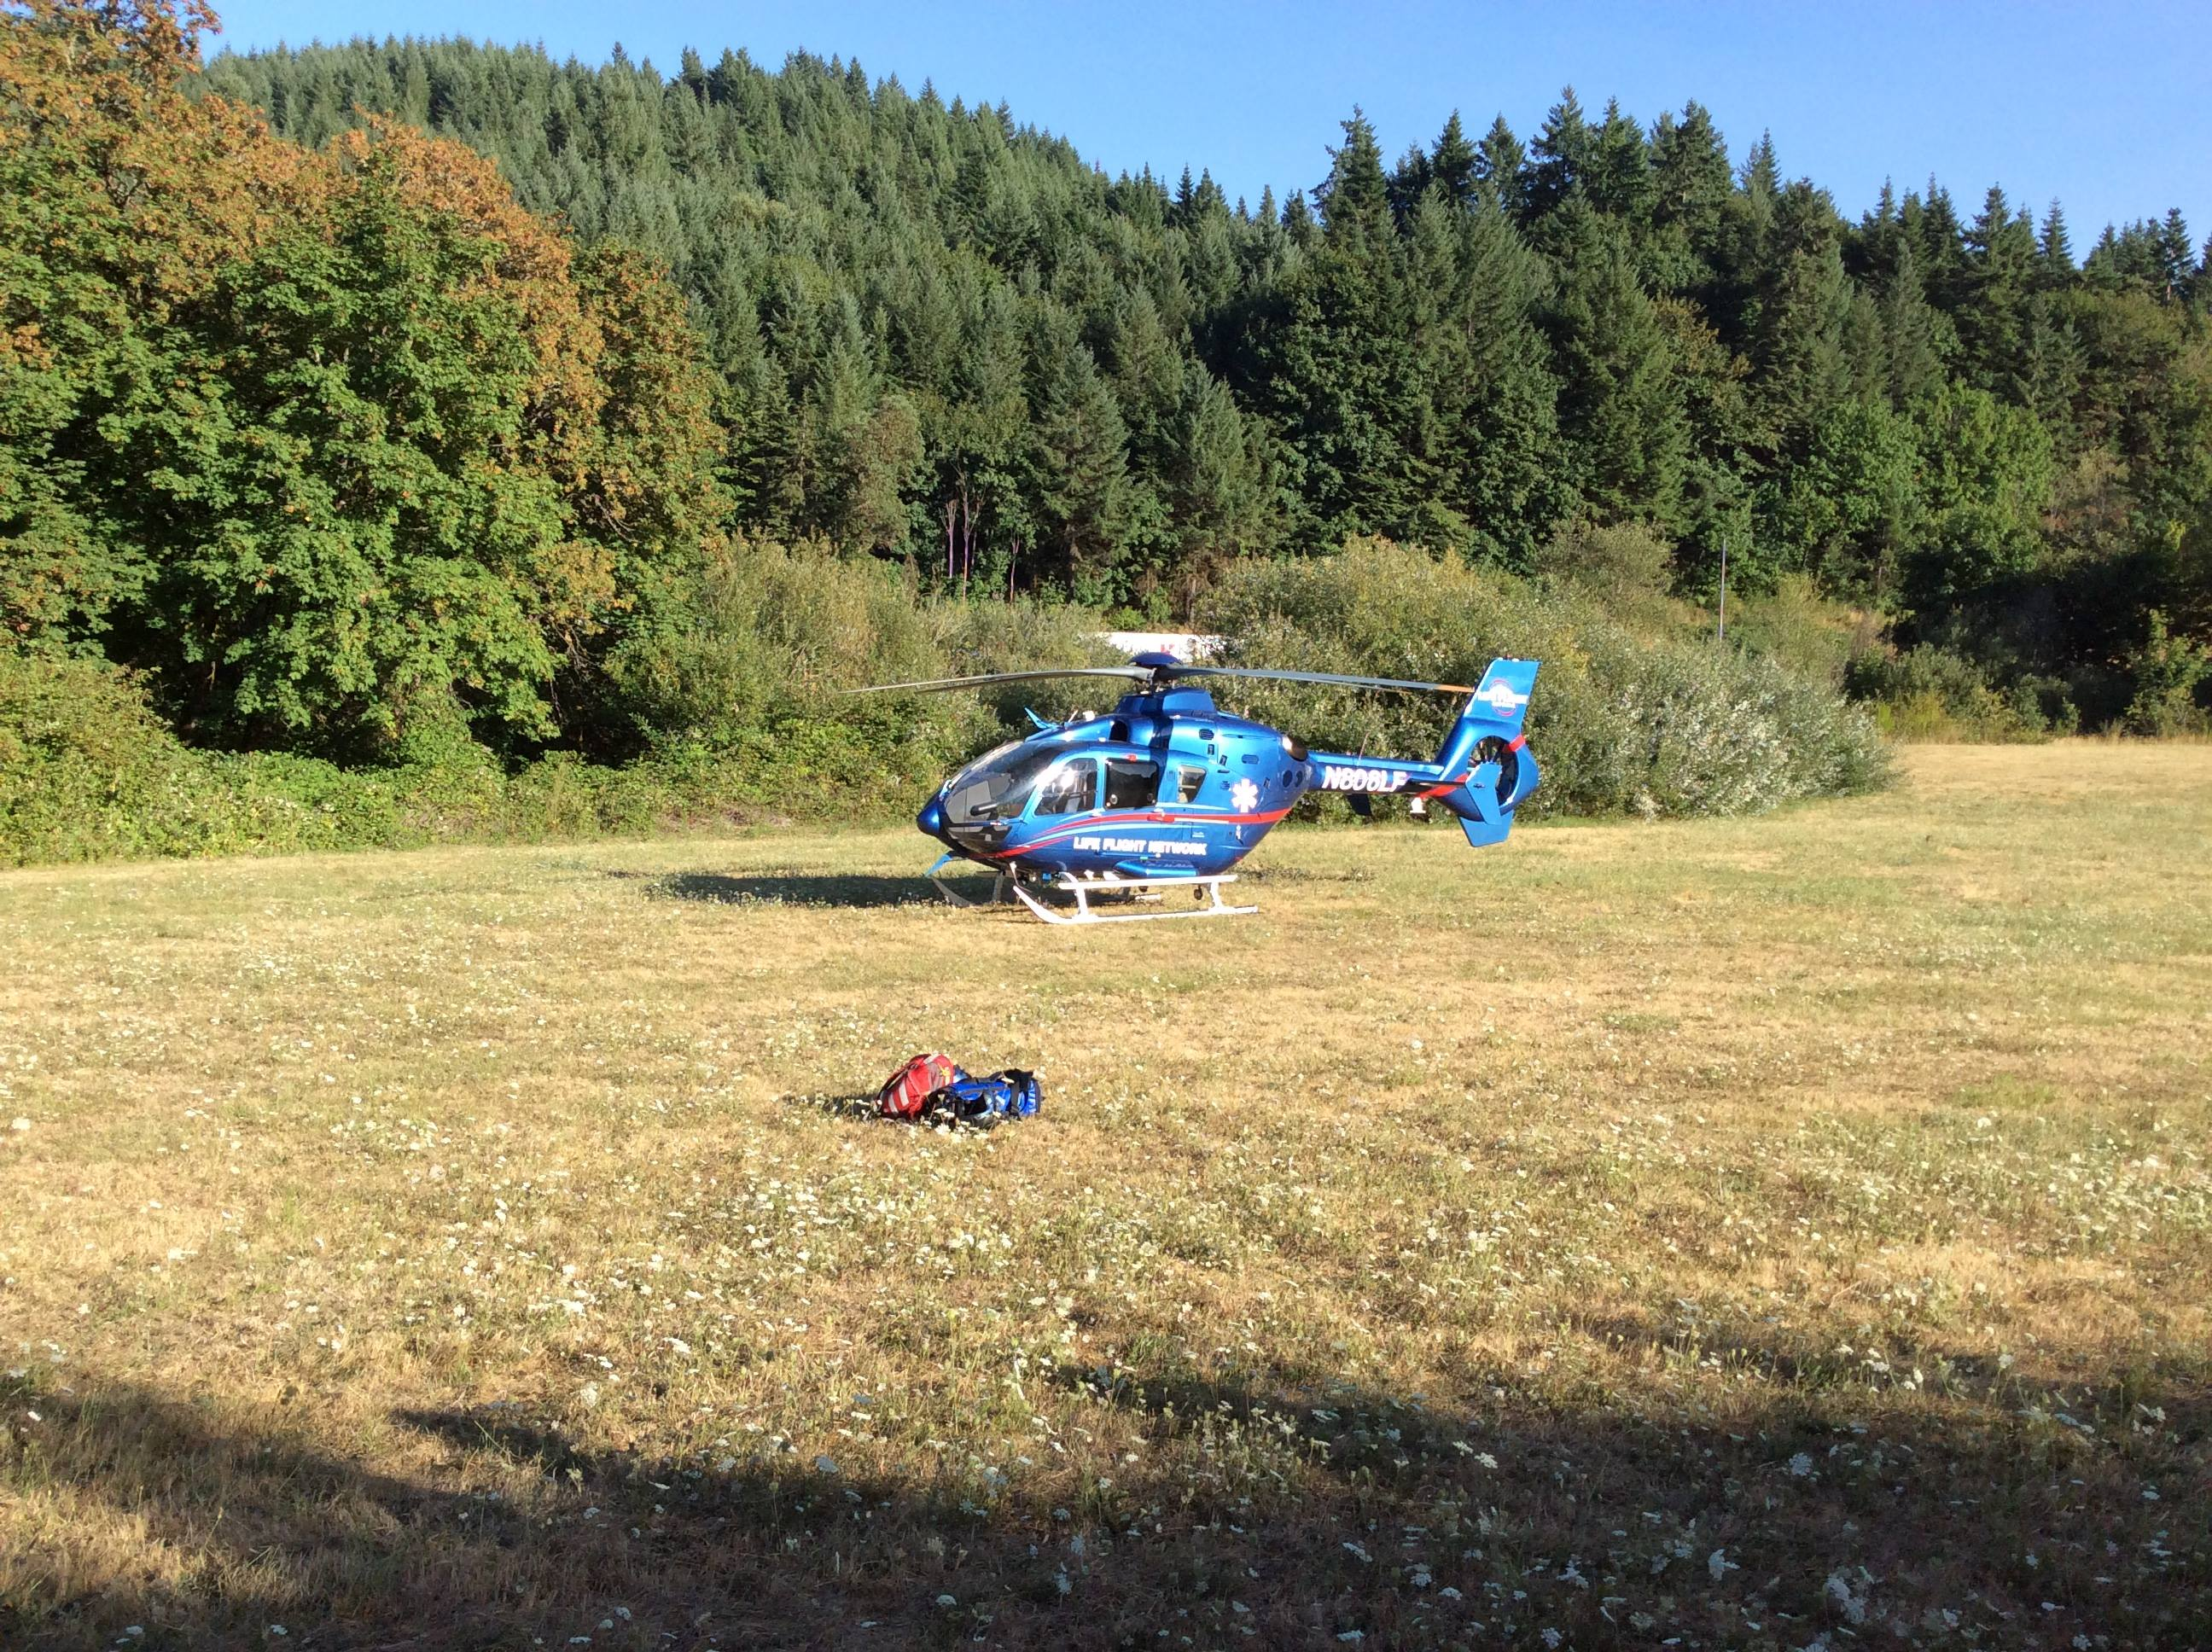 Life Flight 5 from Cottage Grove